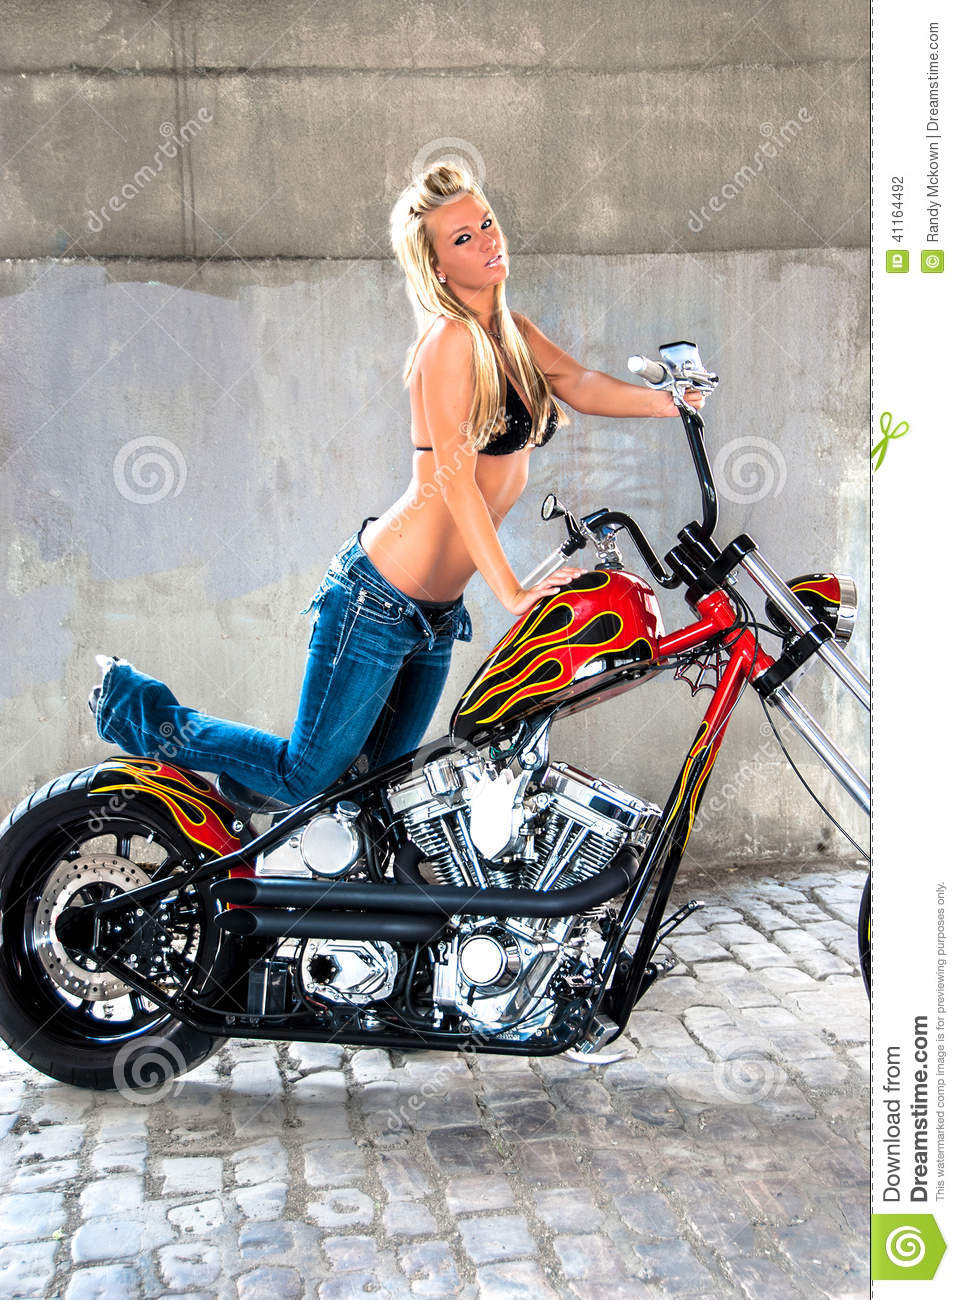 Blonde Girl On Motorcycle Stock Photo Image 41164492